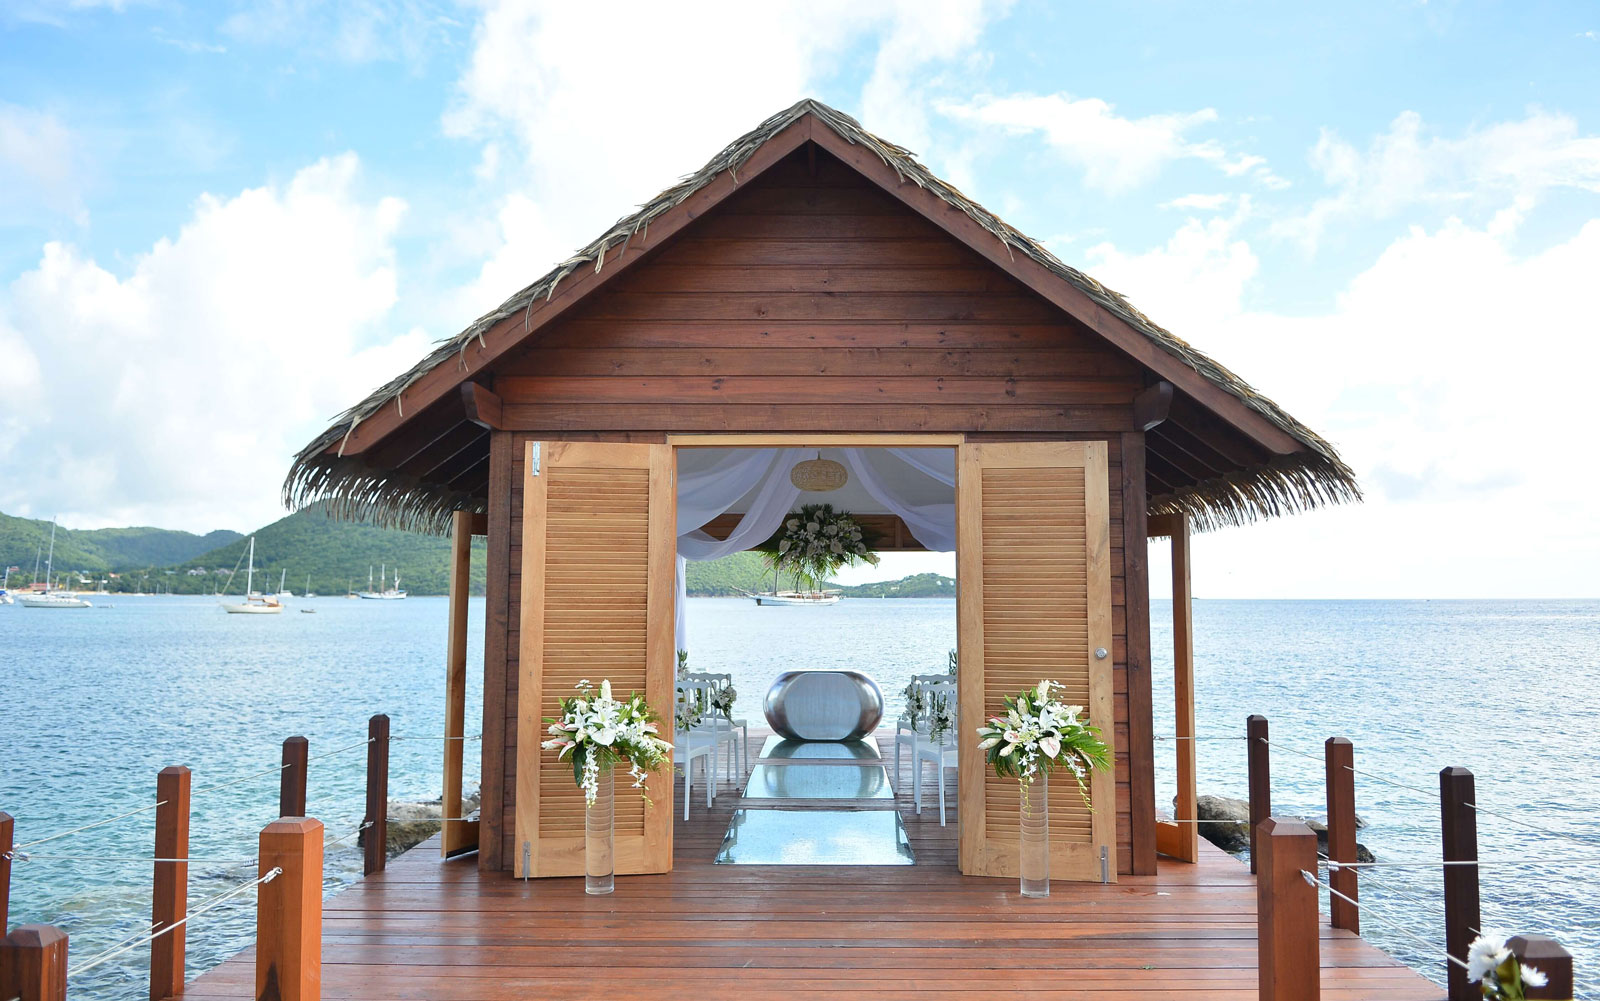 Get Married in an Overwater Chapel in St. Lucia